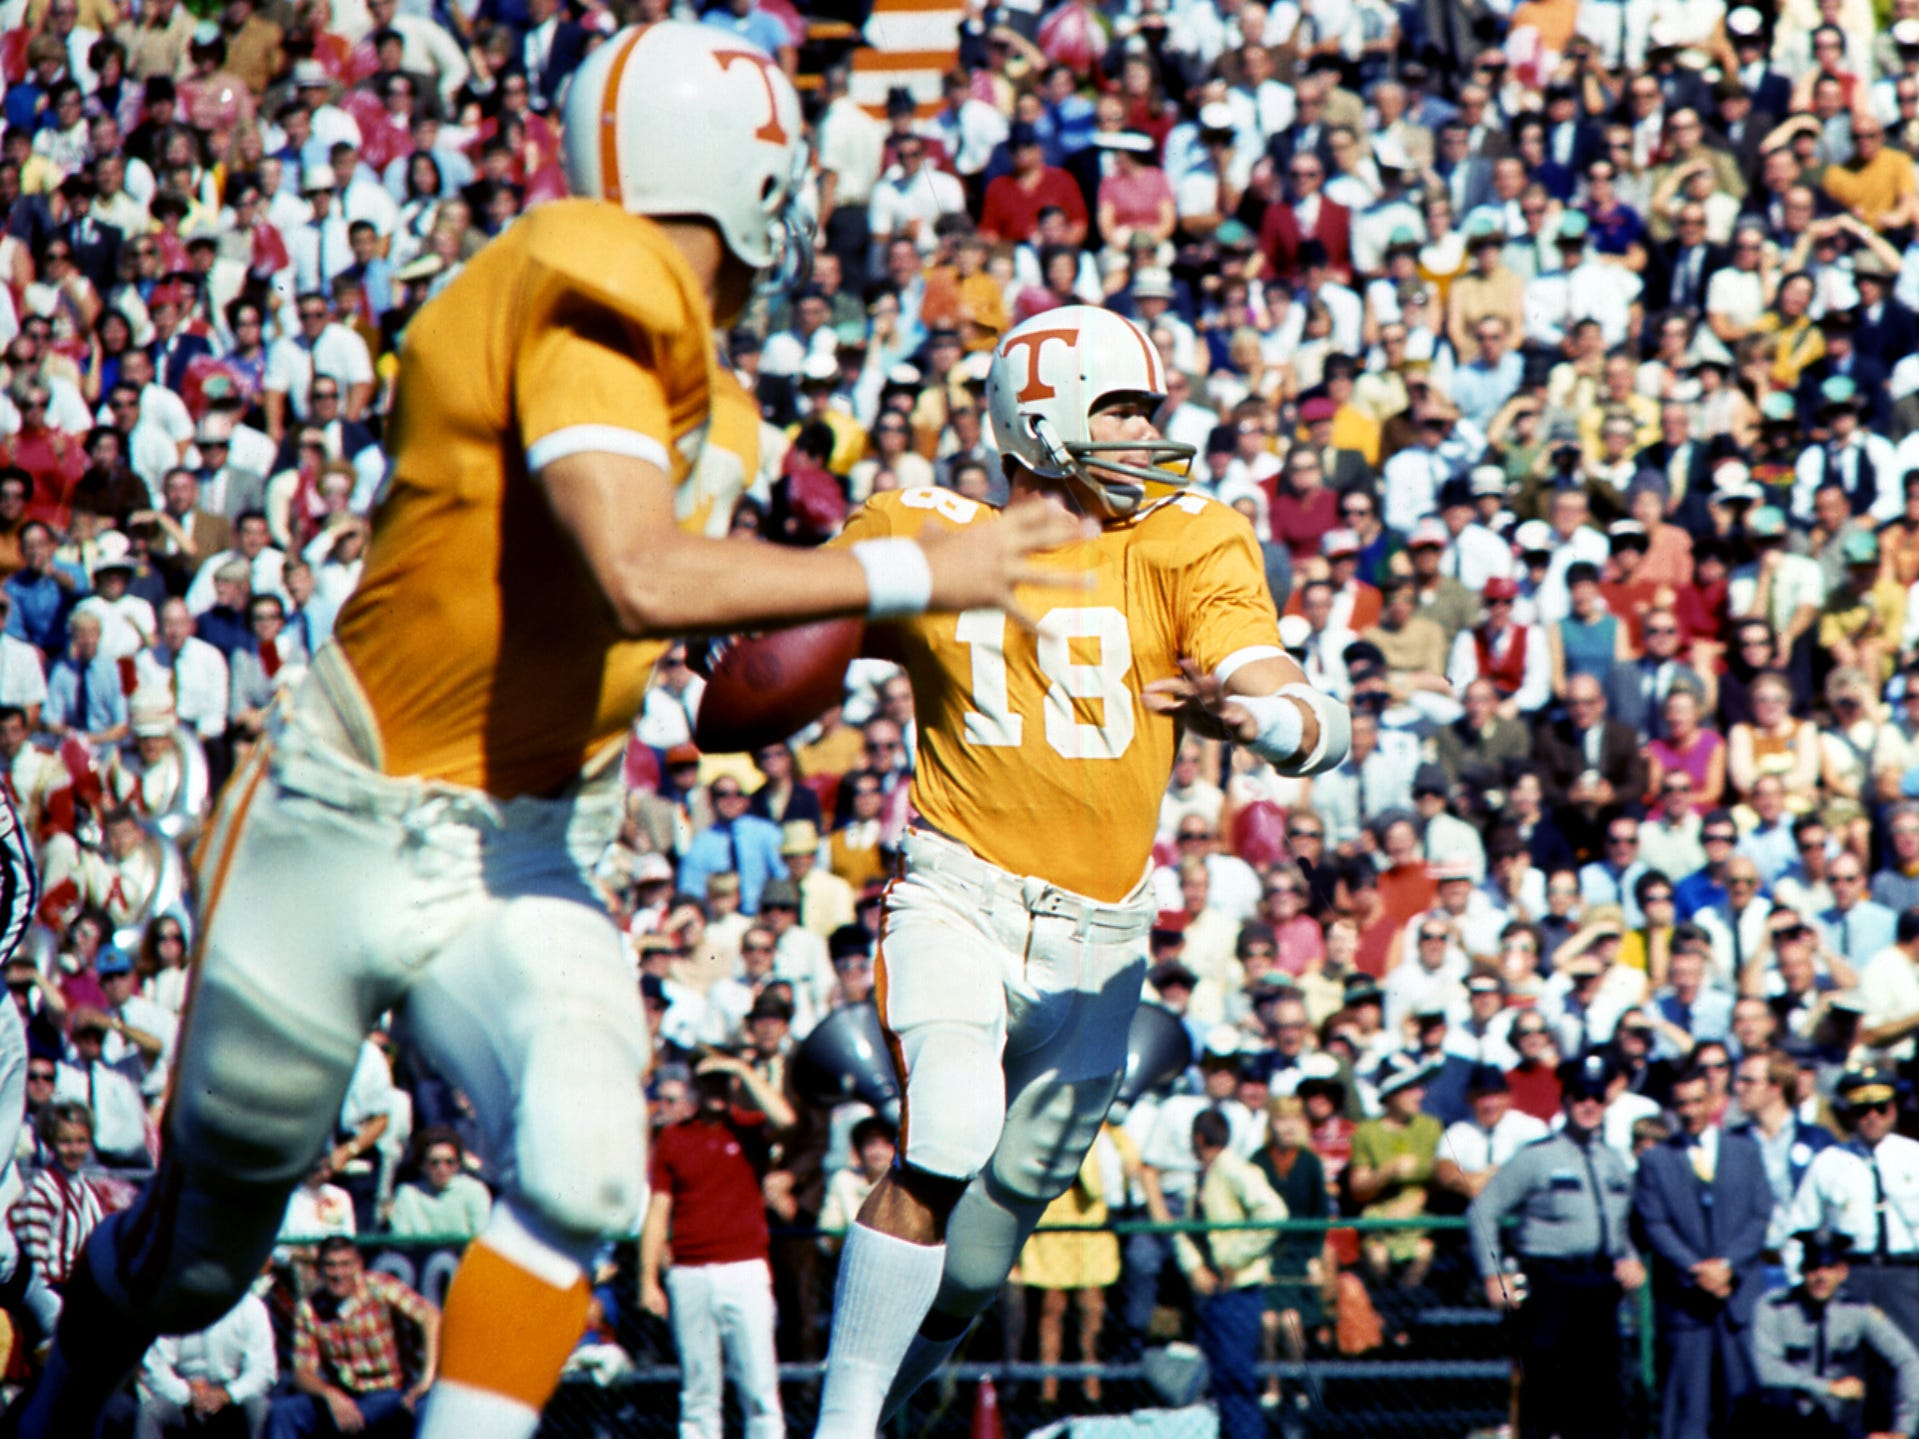 Tennessee senior quarterback Bubba Wyche (18) looks for an open receiver against Alabama at Neyland Stadium Oct. 19, 1968.